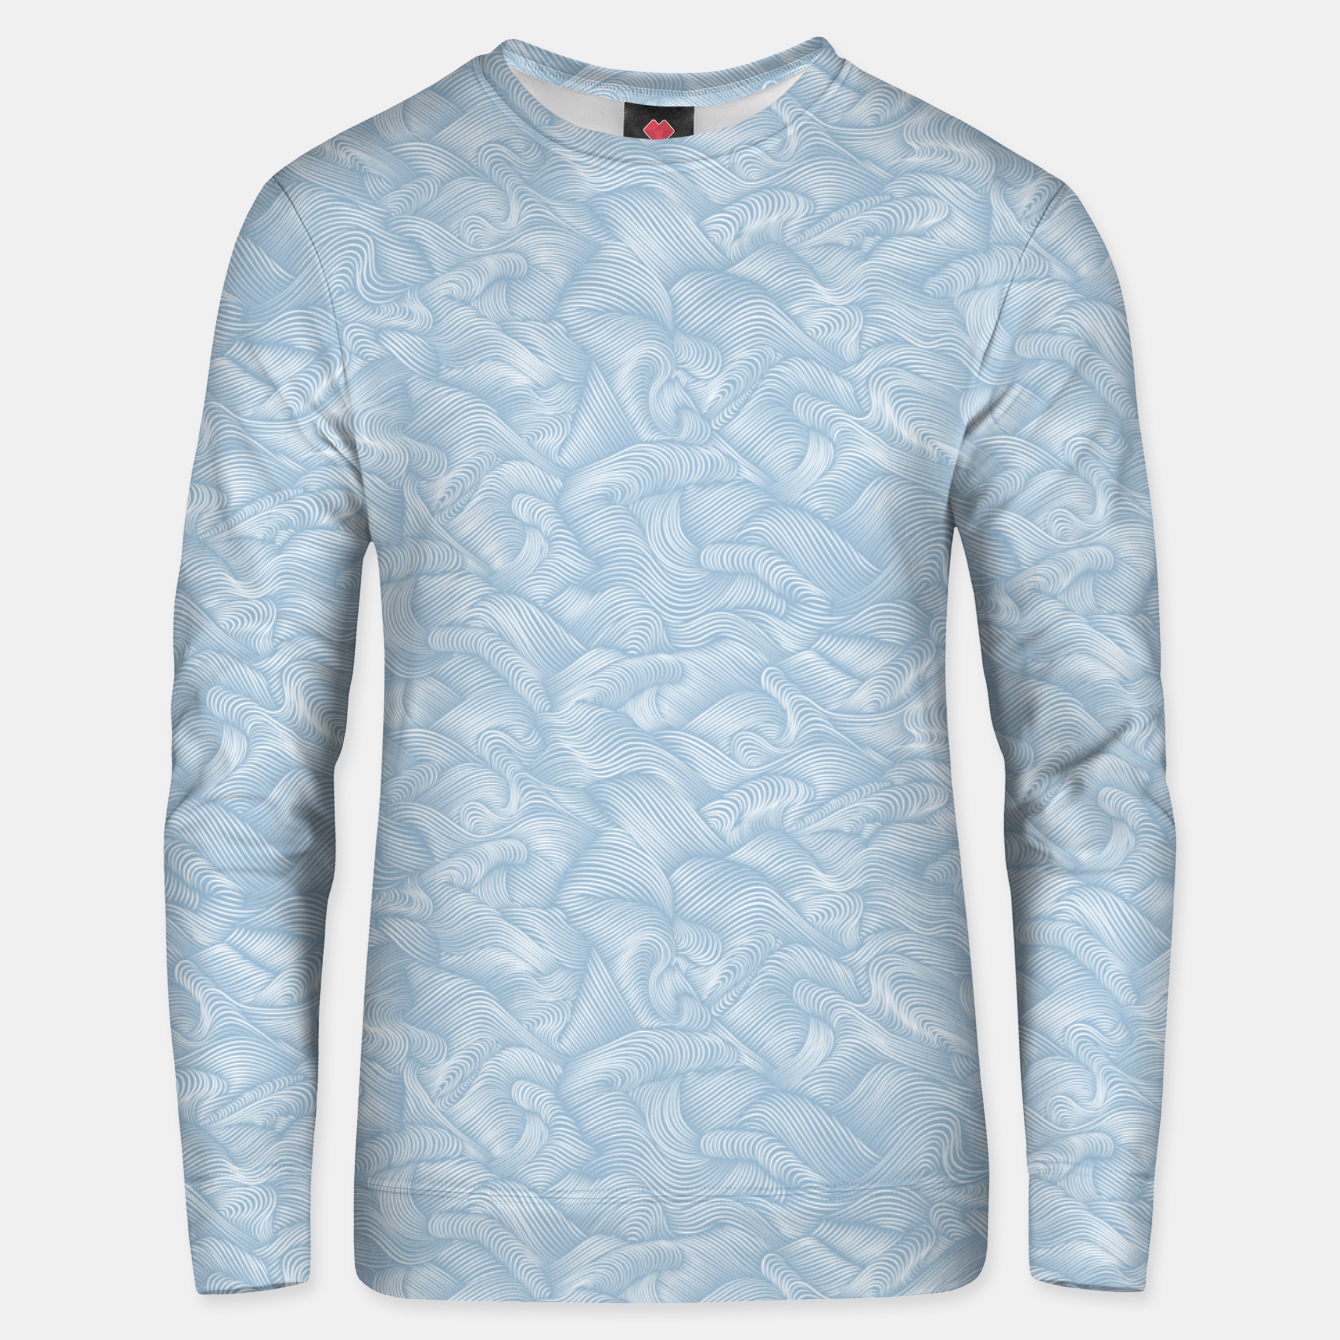 Foto Silky Waves of the Boundless Blue Sea Unisex sweater - Live Heroes